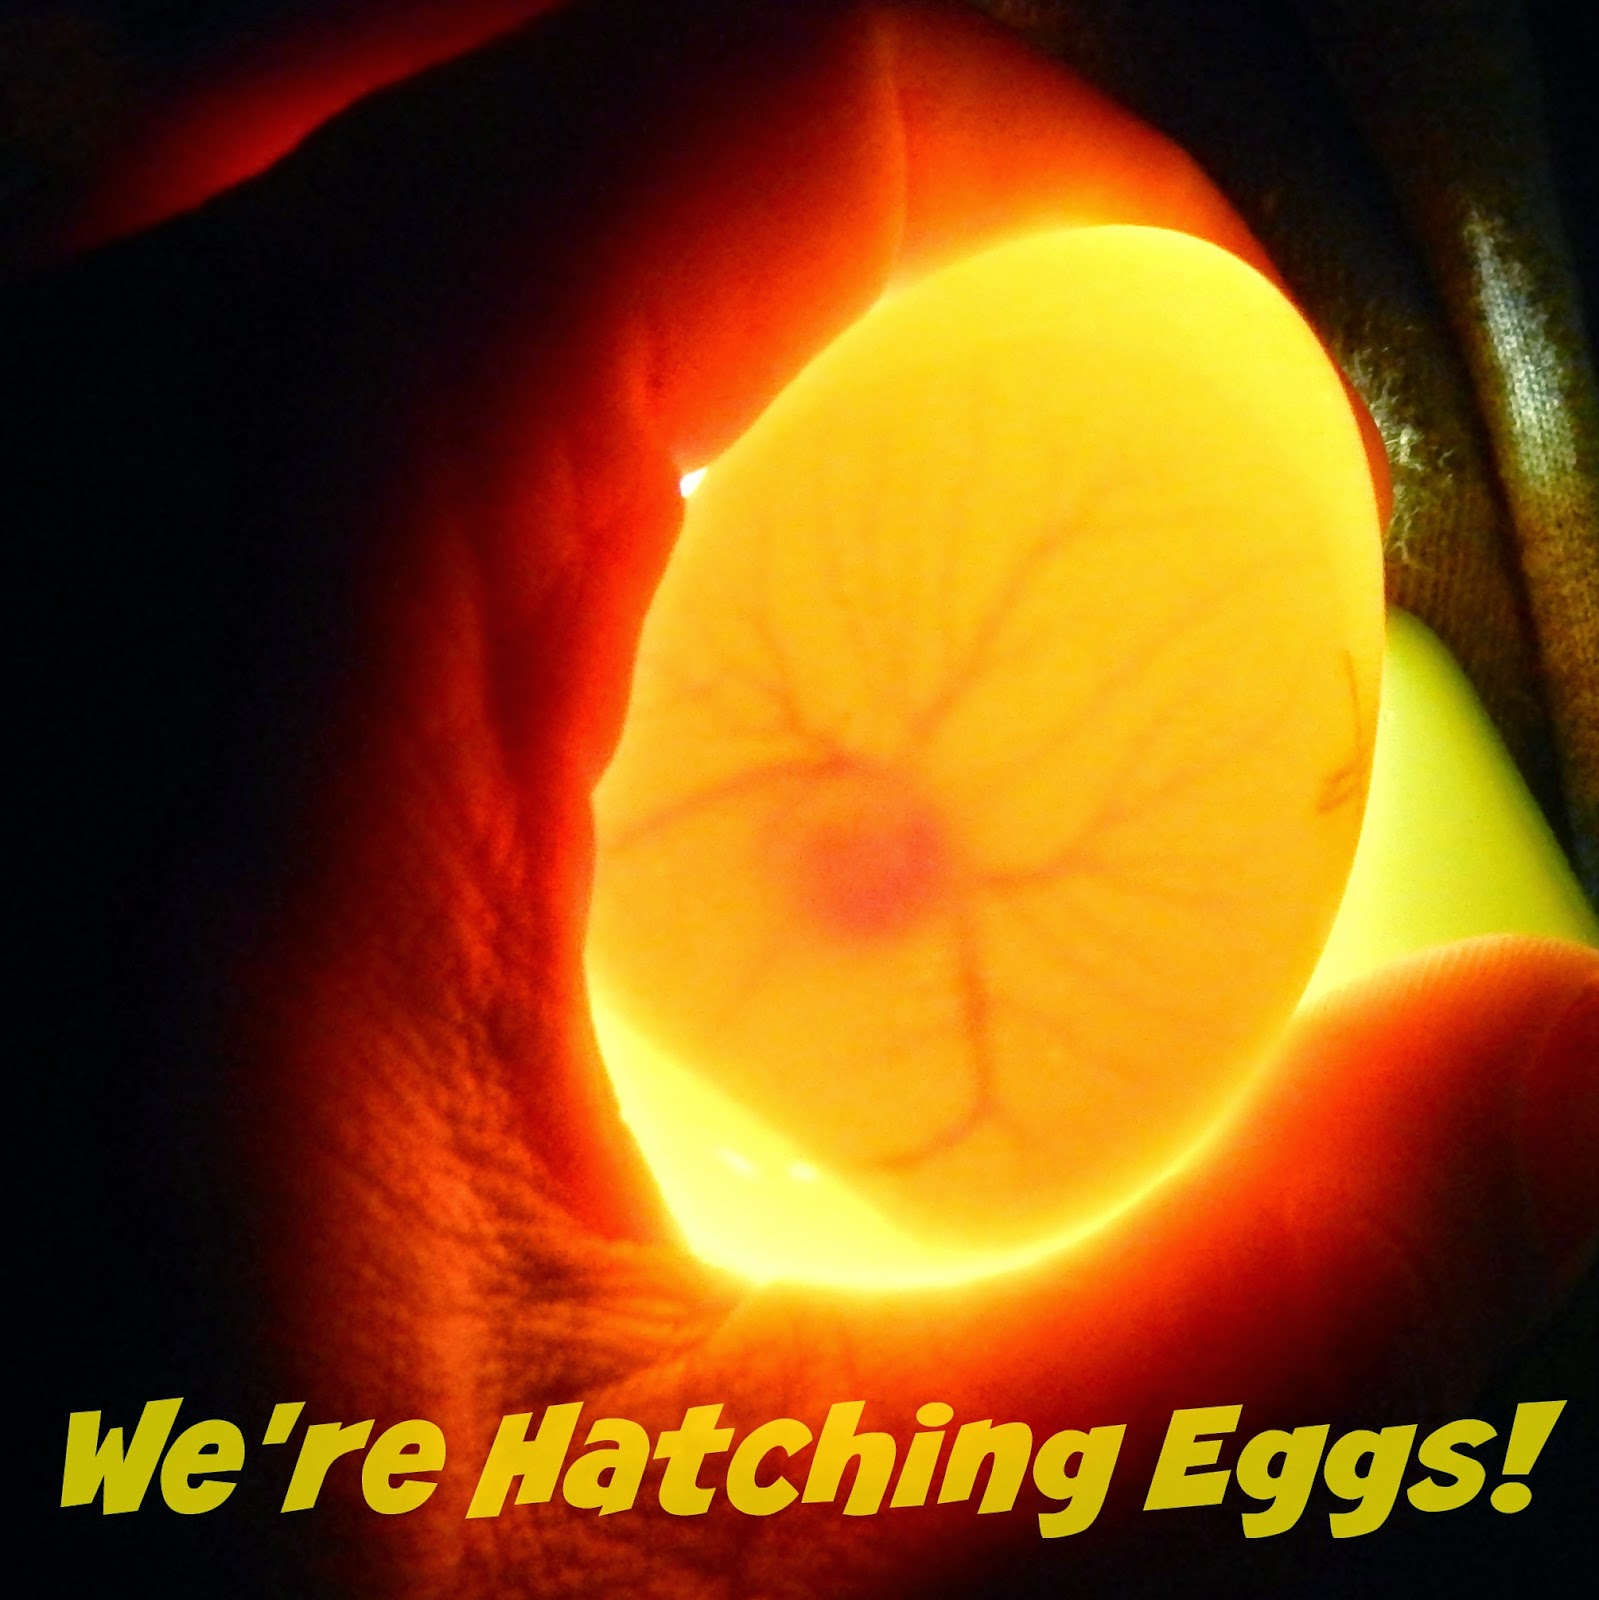 We're Hatching Eggs!